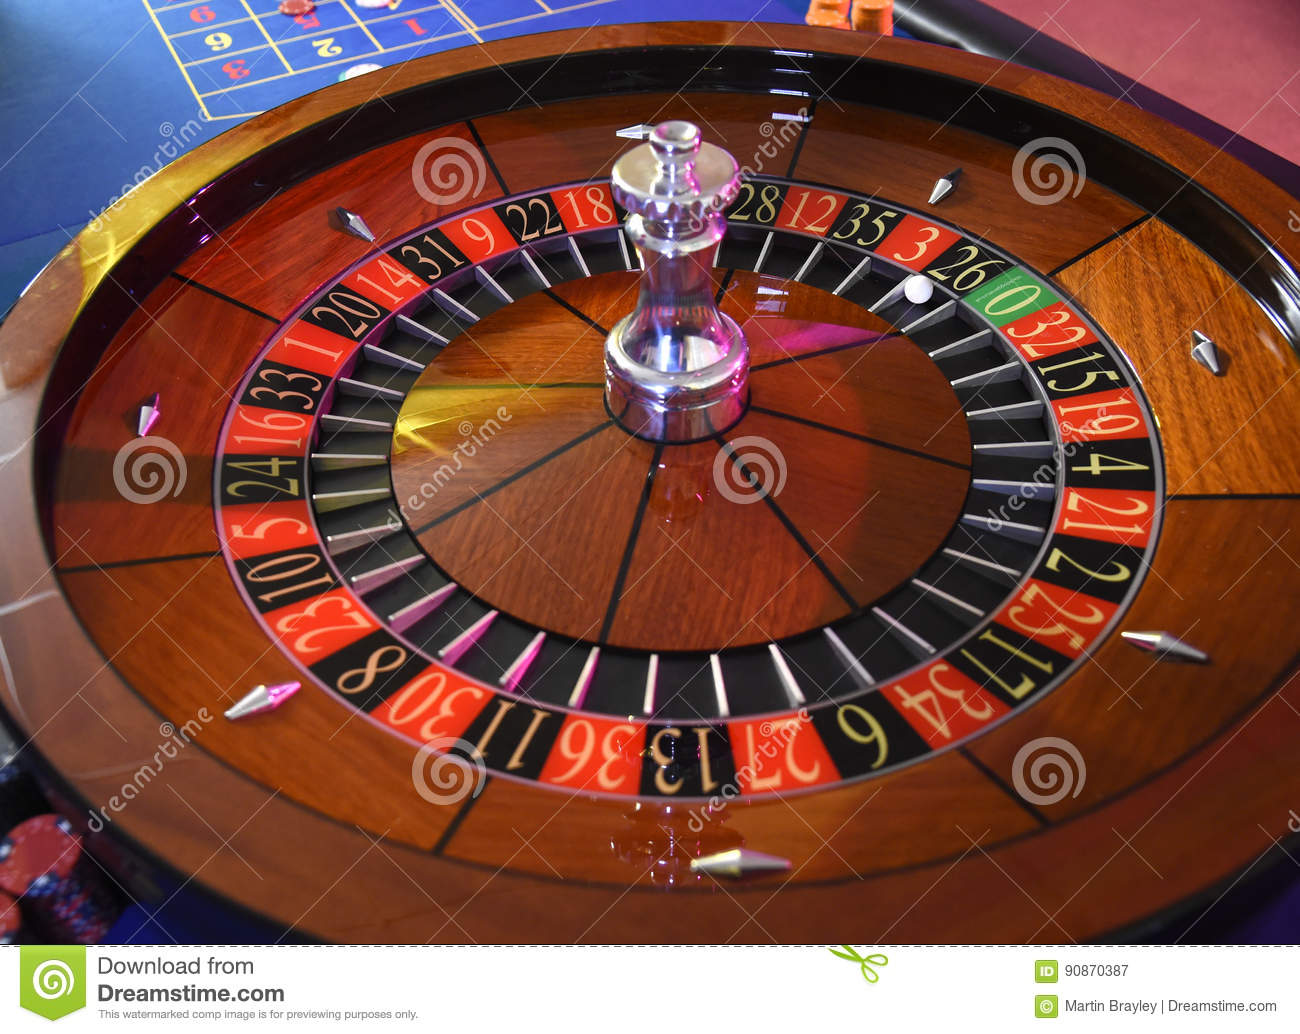 Roulette Wheel Gambling Editorial Photography Image Of Leisure 90870387